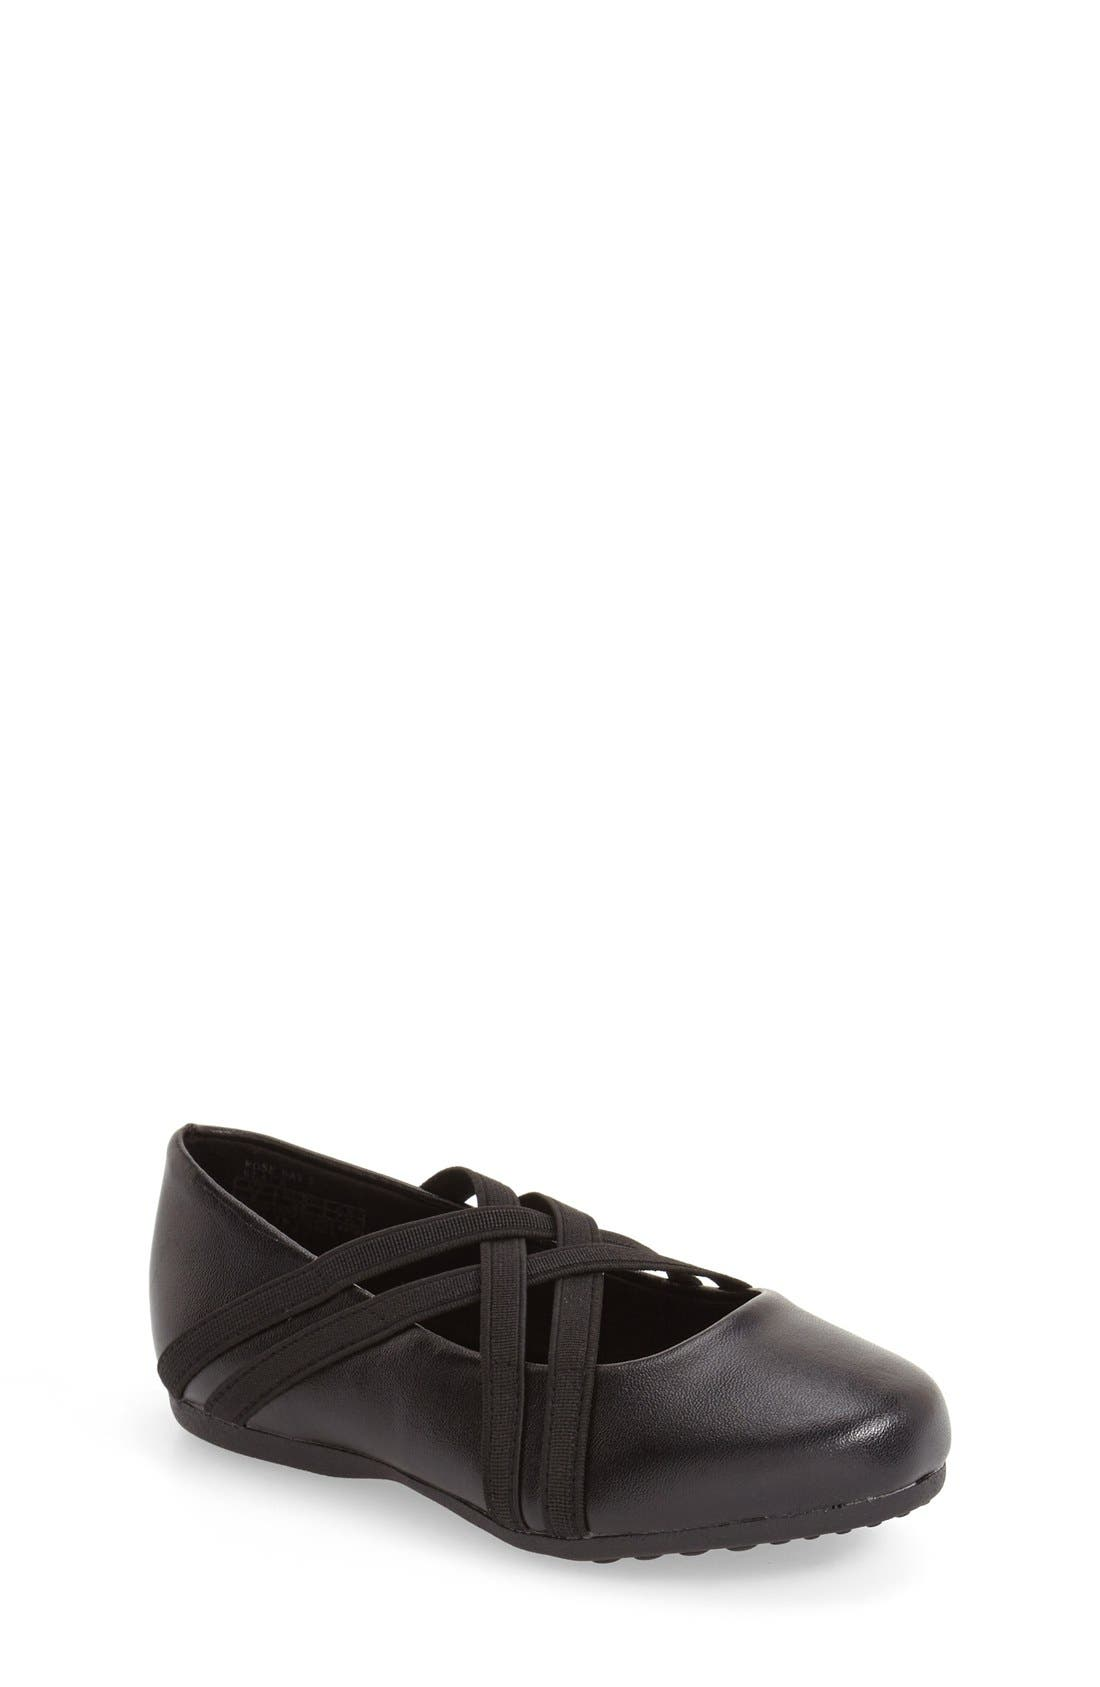 KENNETH COLE NEW YORK 'Rose Bay' Round Toe